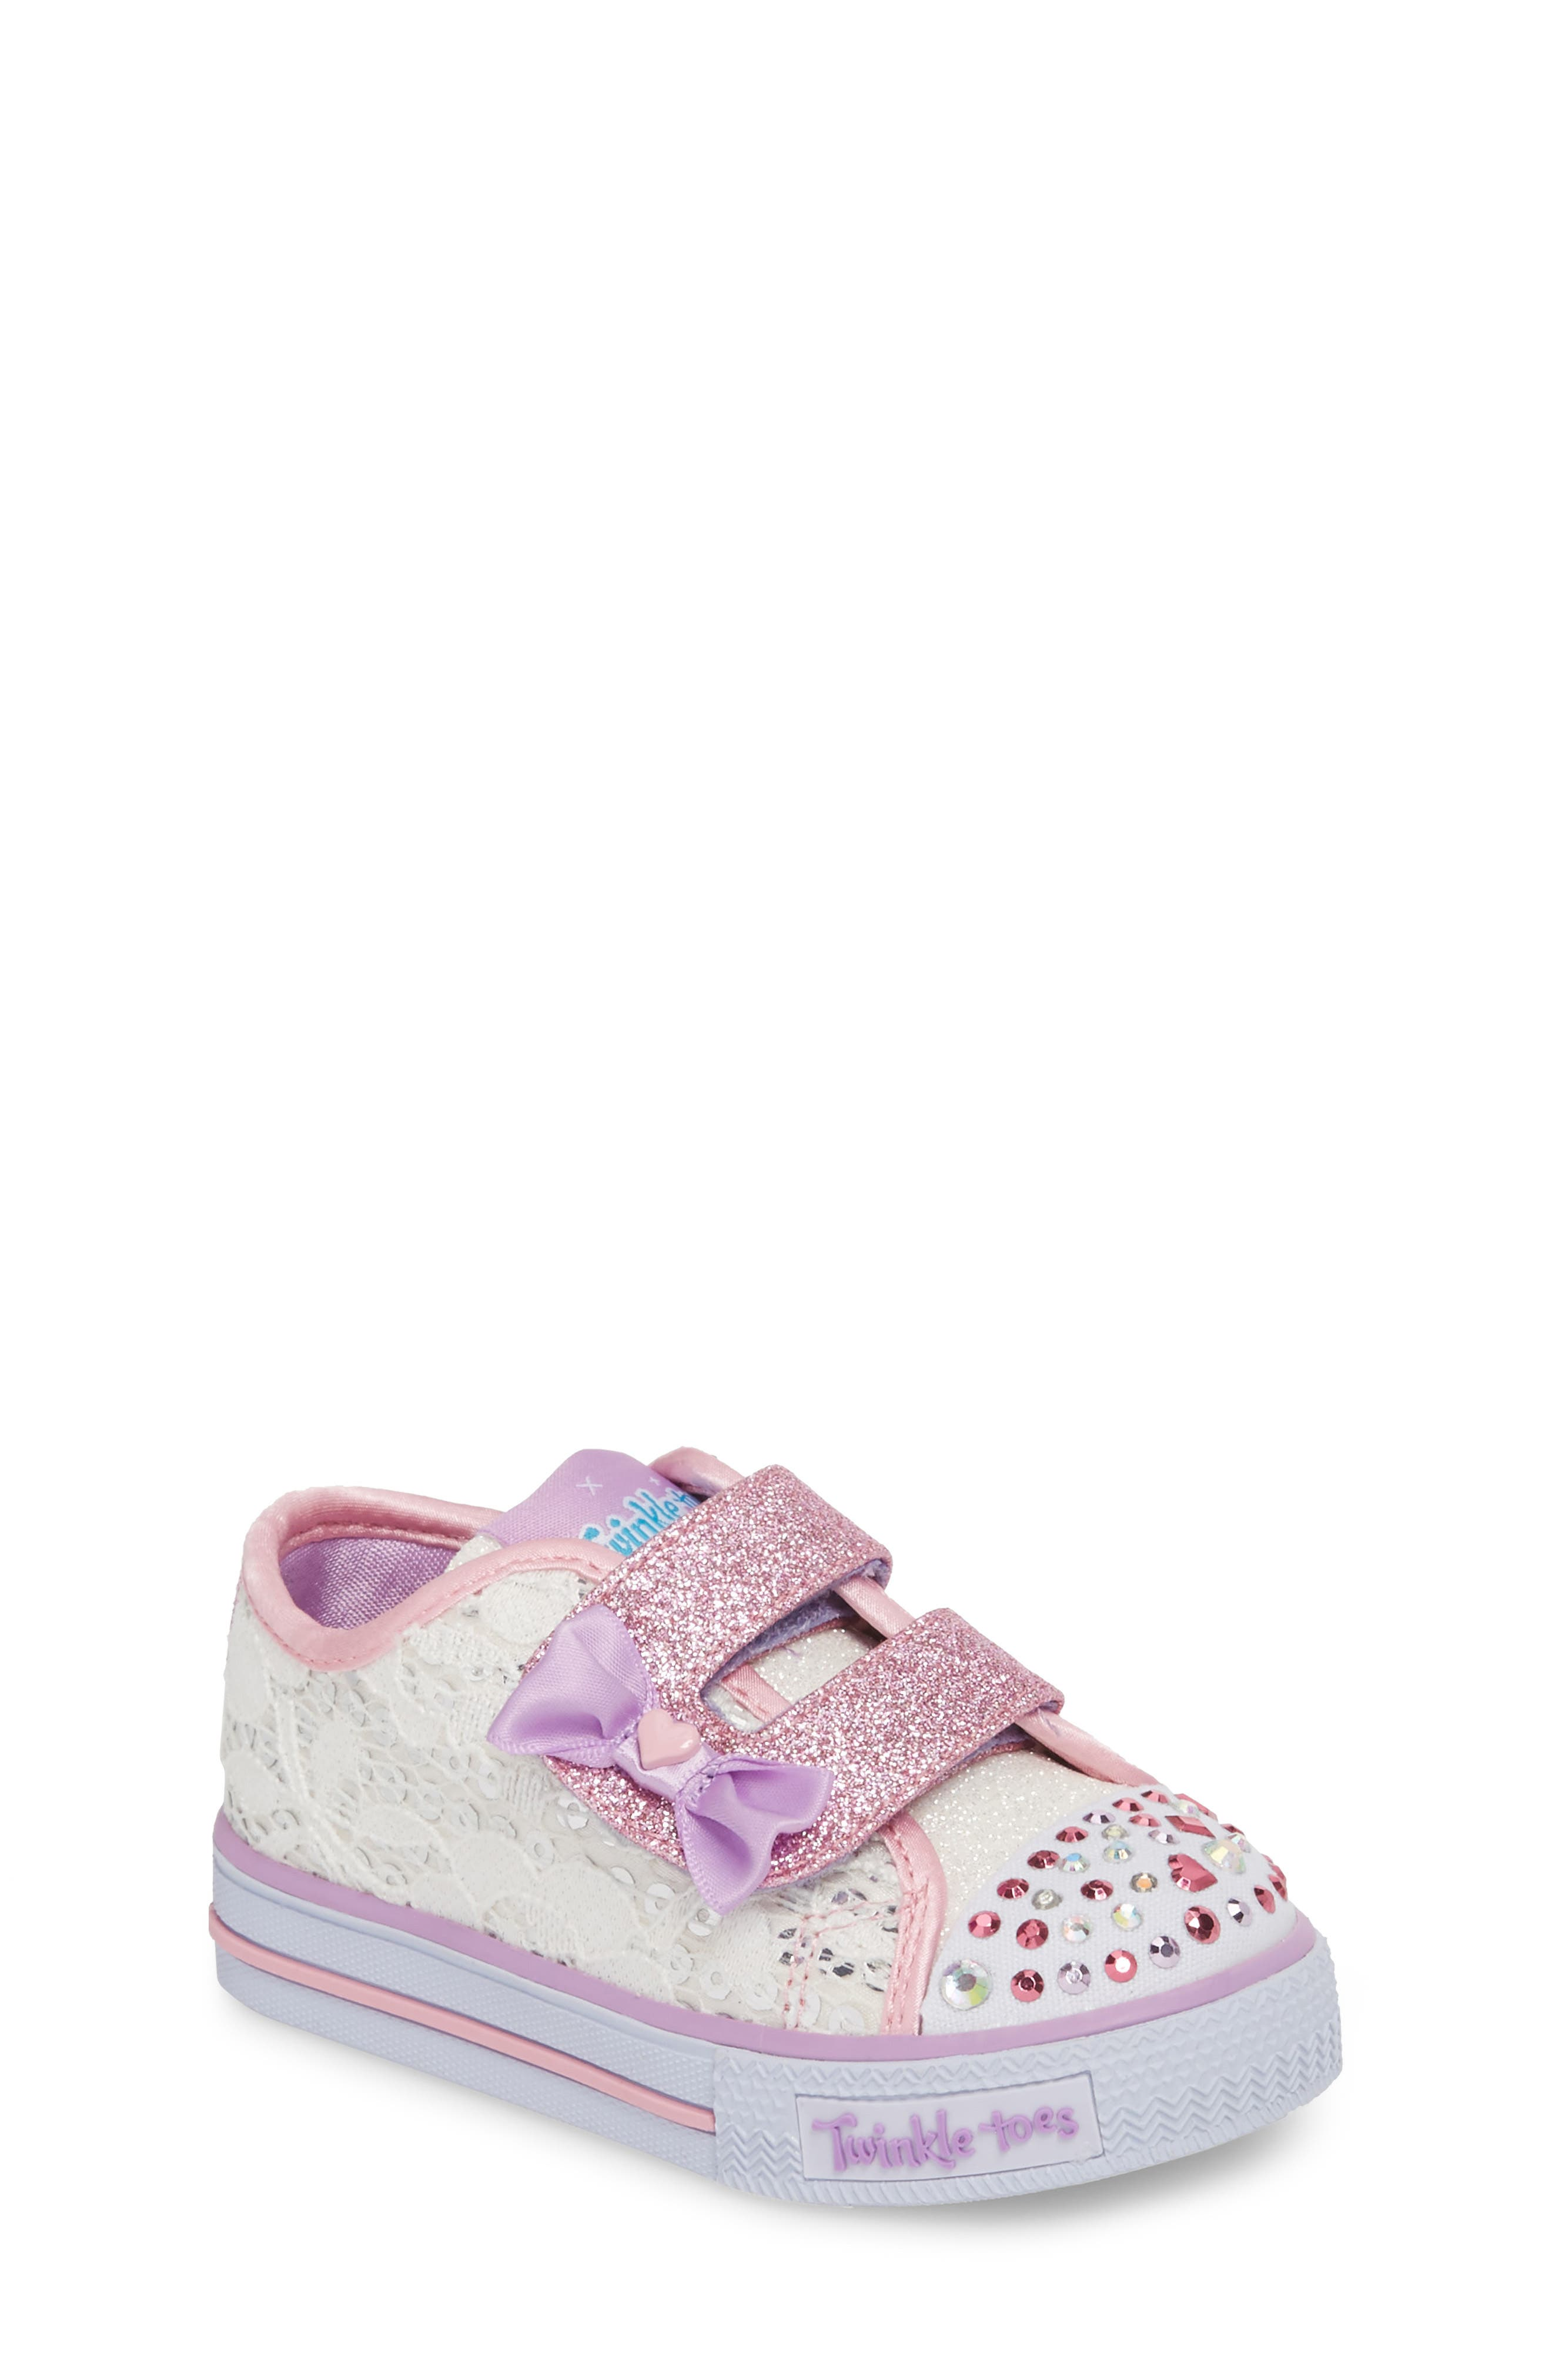 Twinkle Toes Shuffles Light-Up Glitter Sneaker,                         Main,                         color, White/ Silver/ Light Pink